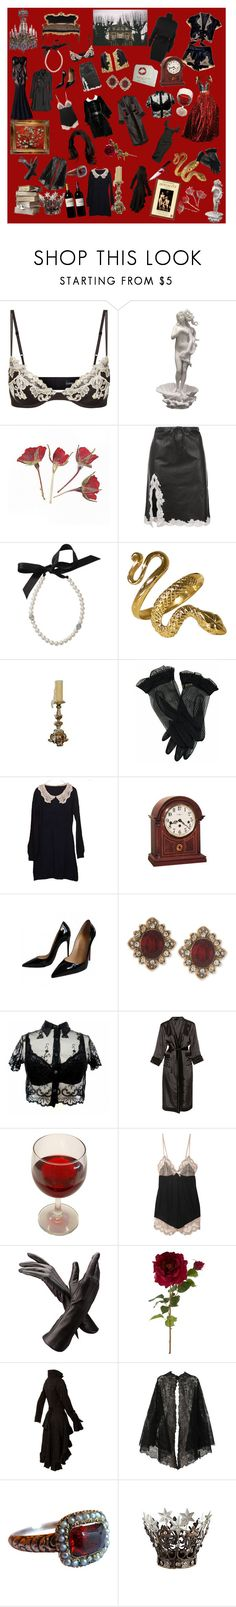 """""""Goth princess"""" by graceegatto ❤ liked on Polyvore featuring La Perla, Dolce&Gabbana, Alexander Wang, Lanvin, Howard Miller, Zuhair Murad, Christian Louboutin, Marchesa, Eberjey and Aspinal of London"""